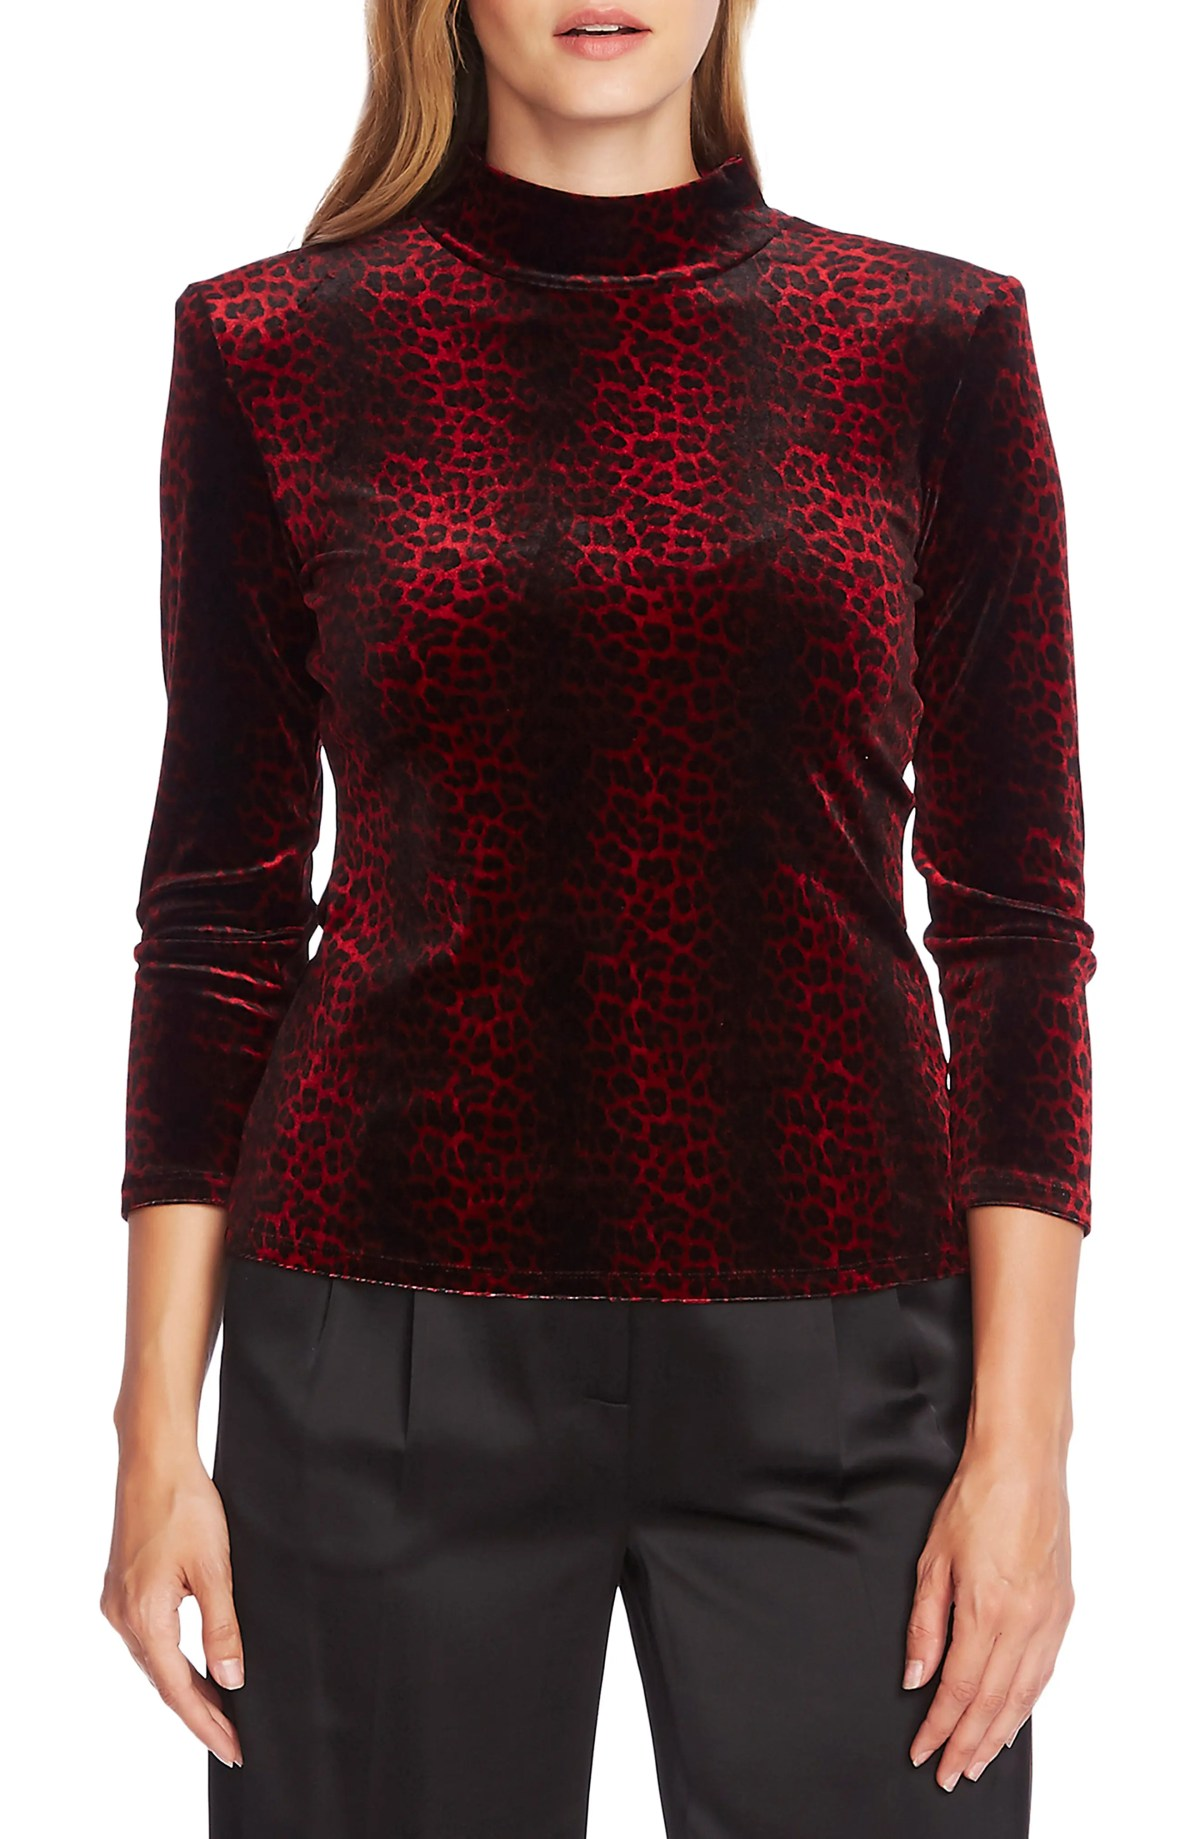 VINCE CAMUTO Moonlit Leopard Print Top, Main, color, FLORENCE RED